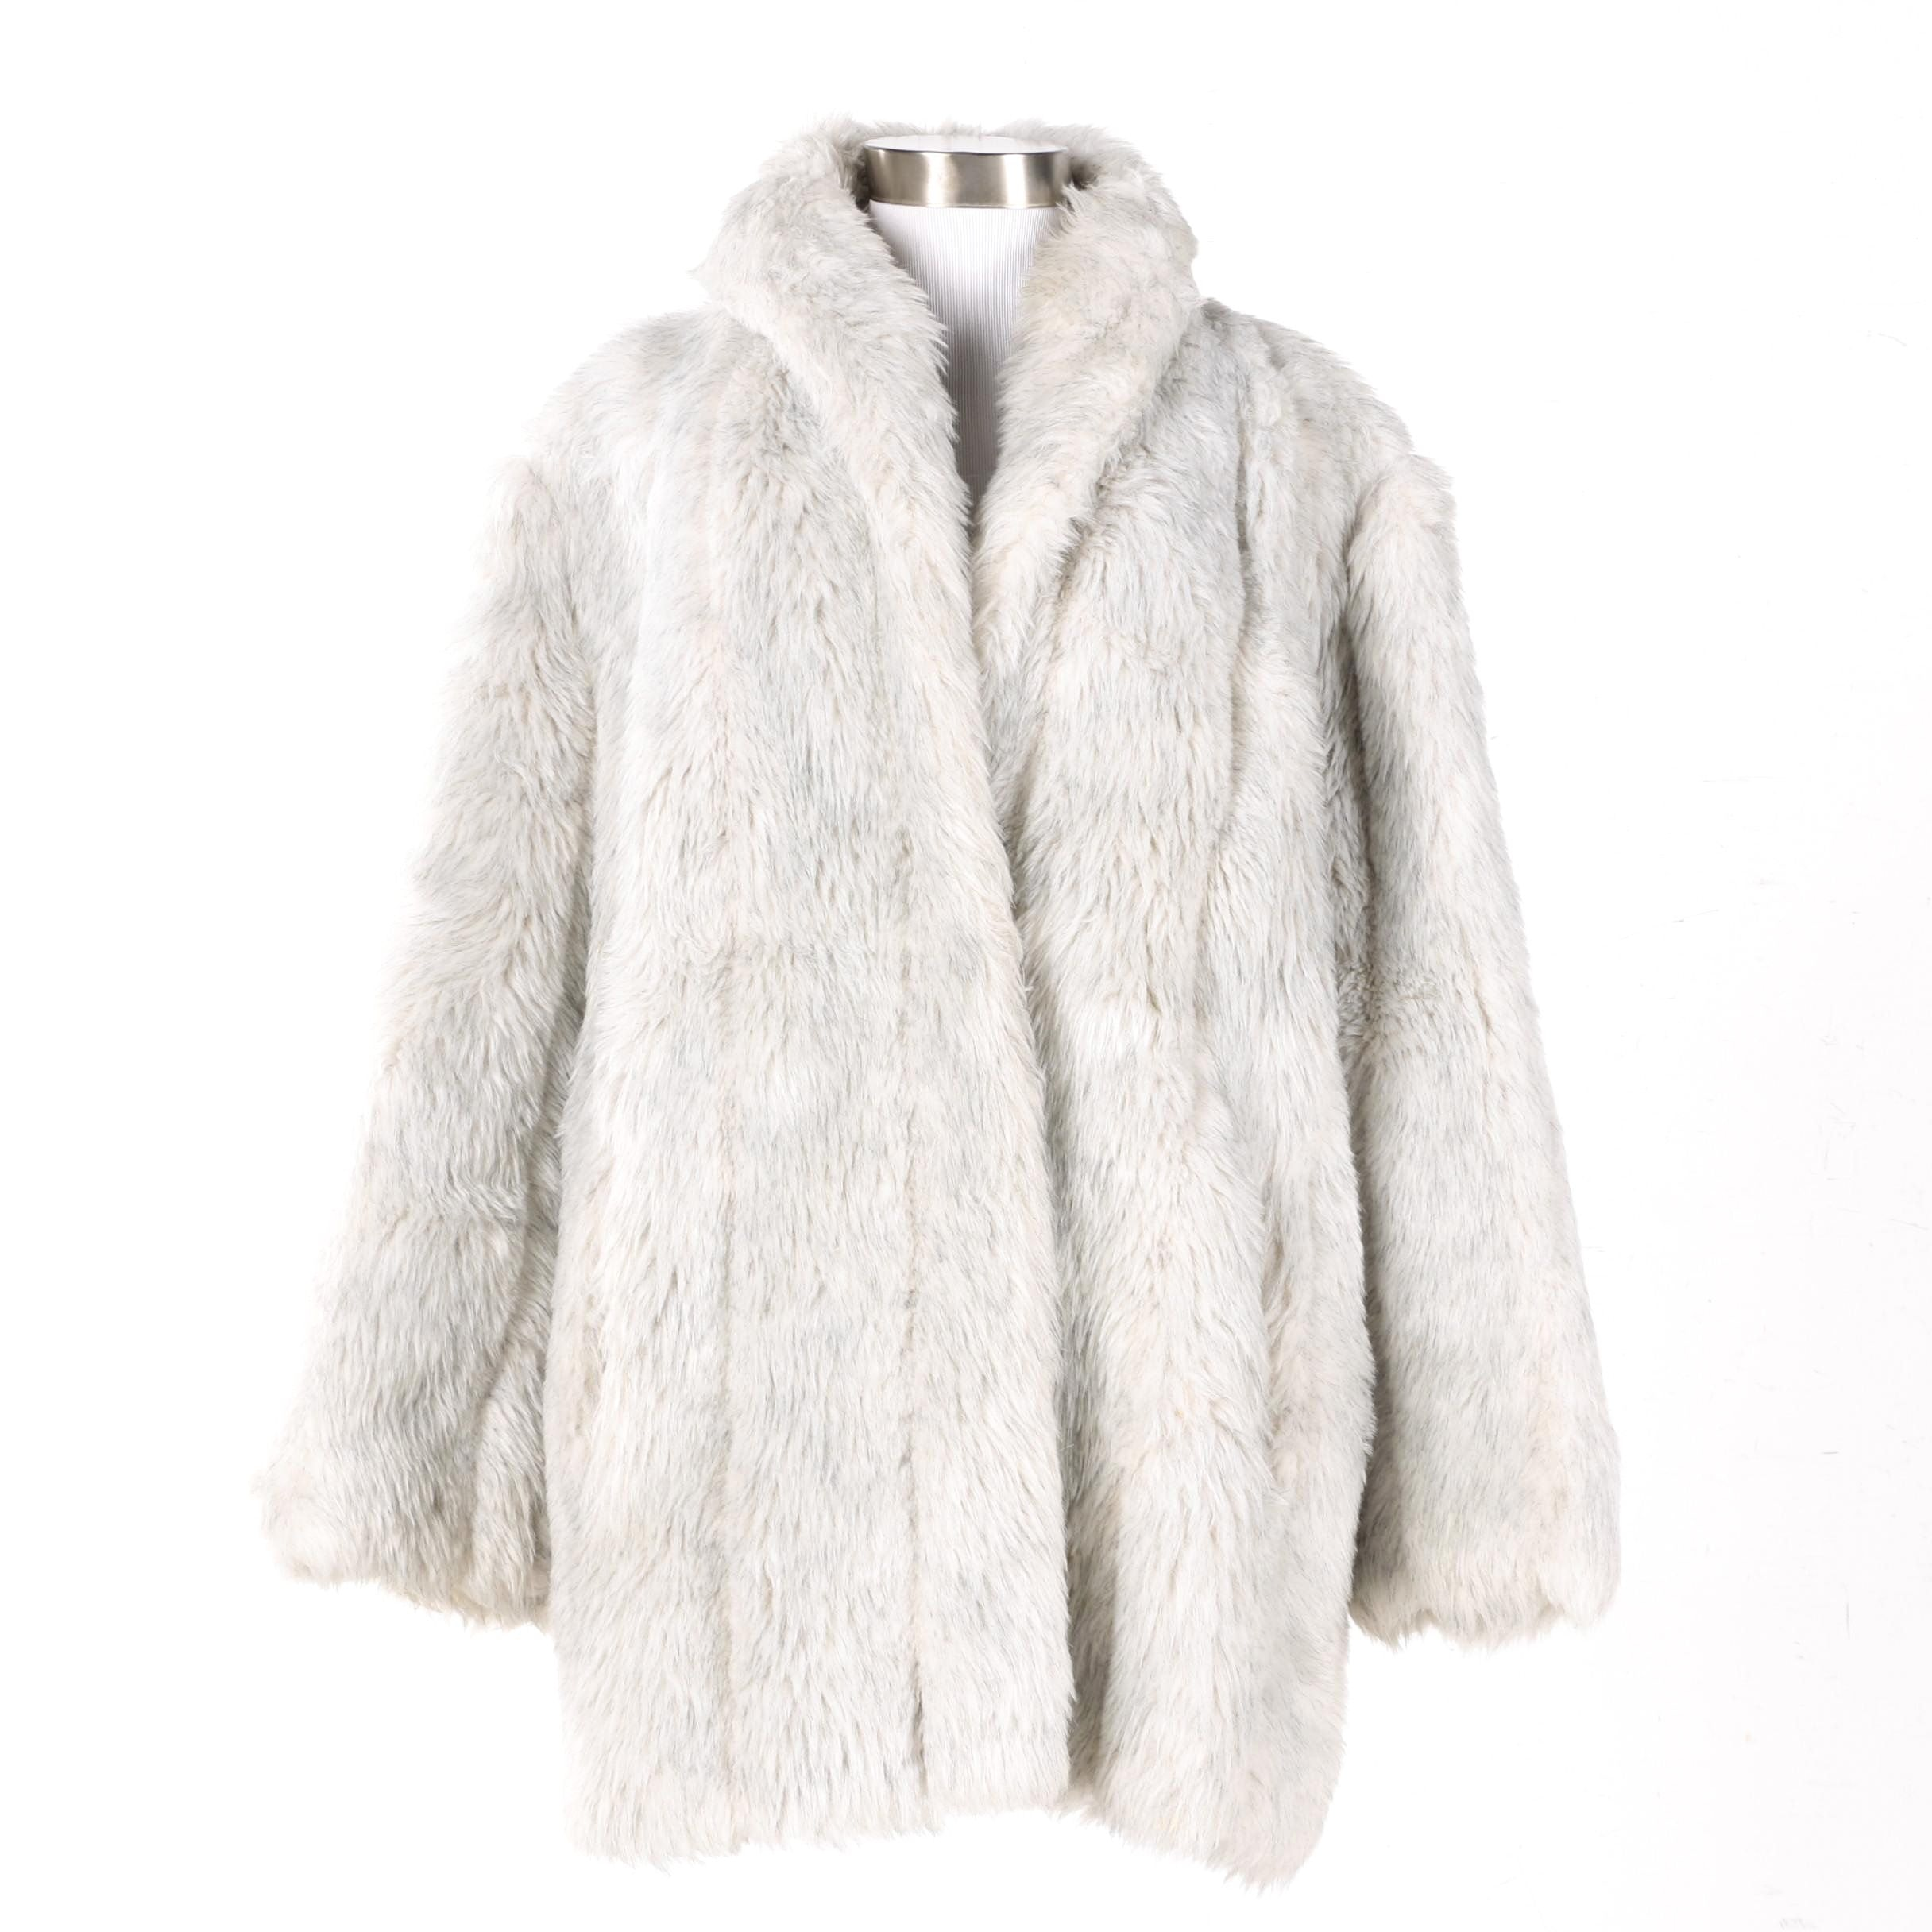 Blair Faux Fur Coat